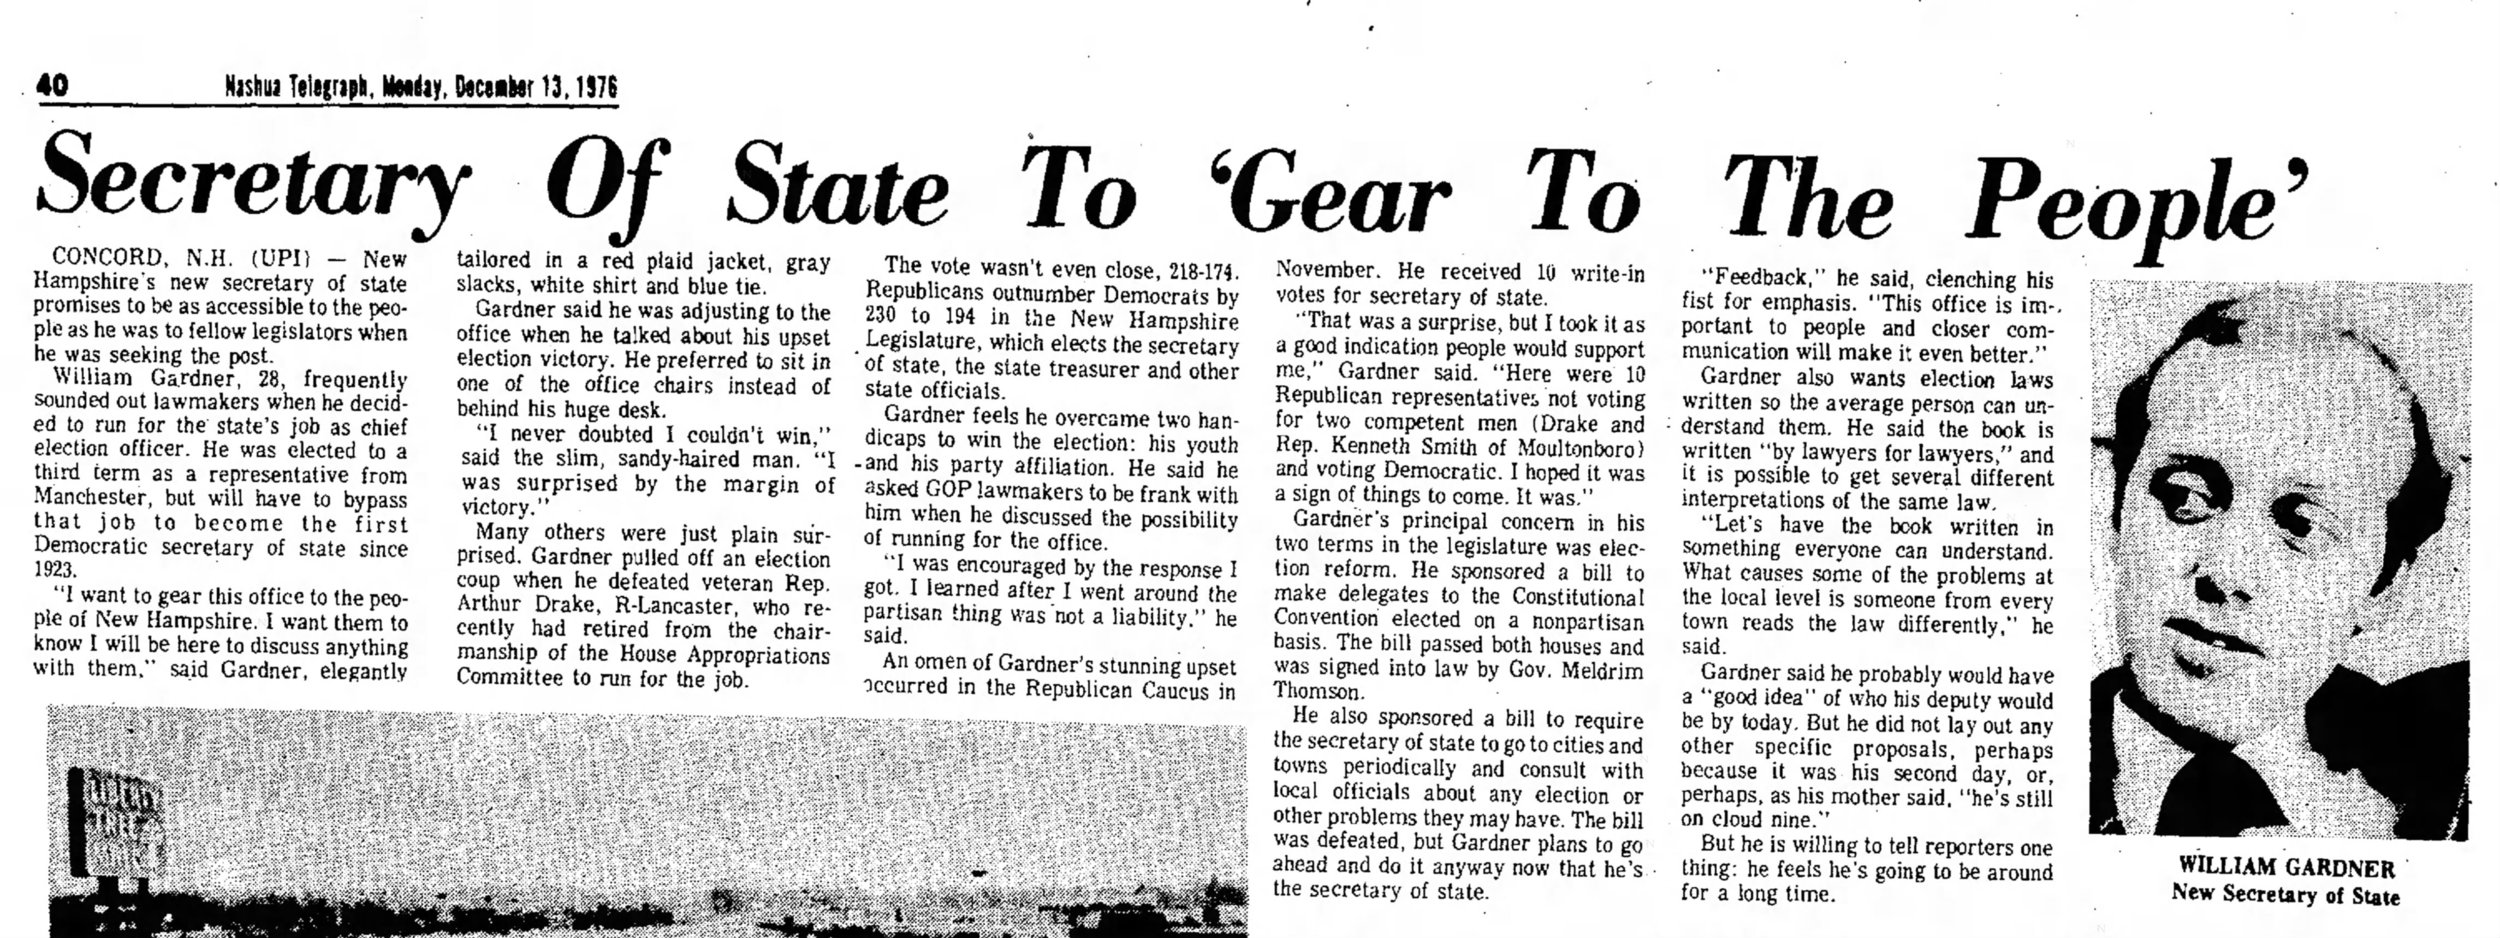 "A prescient line from the Nashua Telegraph's story on Gardner's surprise victory for Secretary of State in 1976: ""He feels he's going to be around for a long time."""